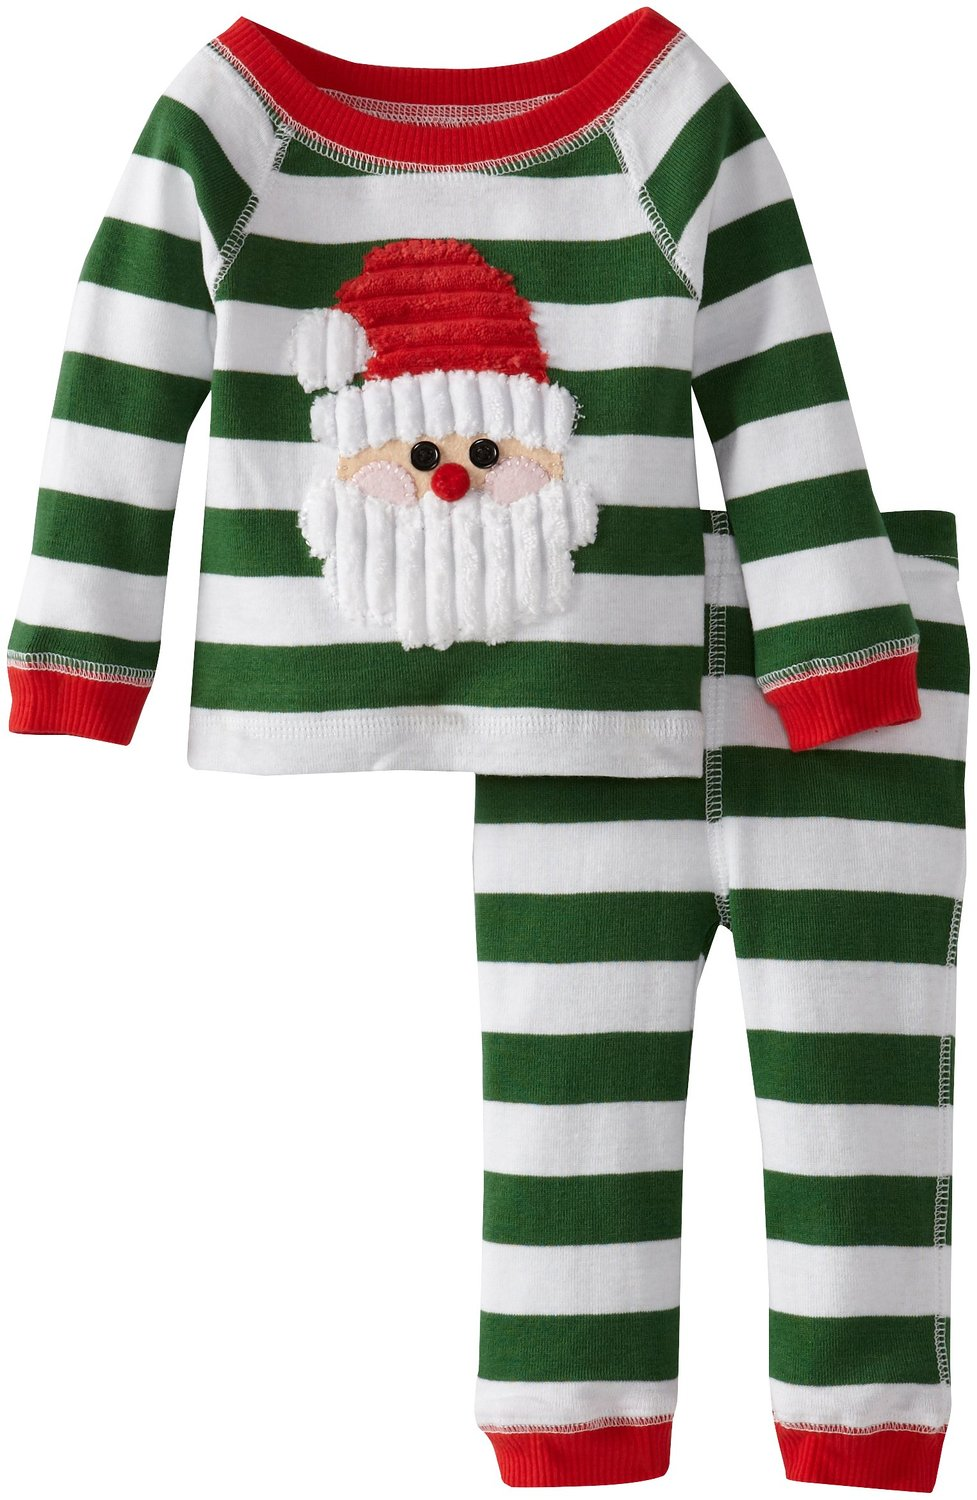 Baby Christmas Pajamas. Coziest Christmas ever! Jump into the holiday season with the cutest little jammies for your baby girl or boy. From festively patterned PJs to winter-themed designs, you're sure to find adorable pieces for your little one.